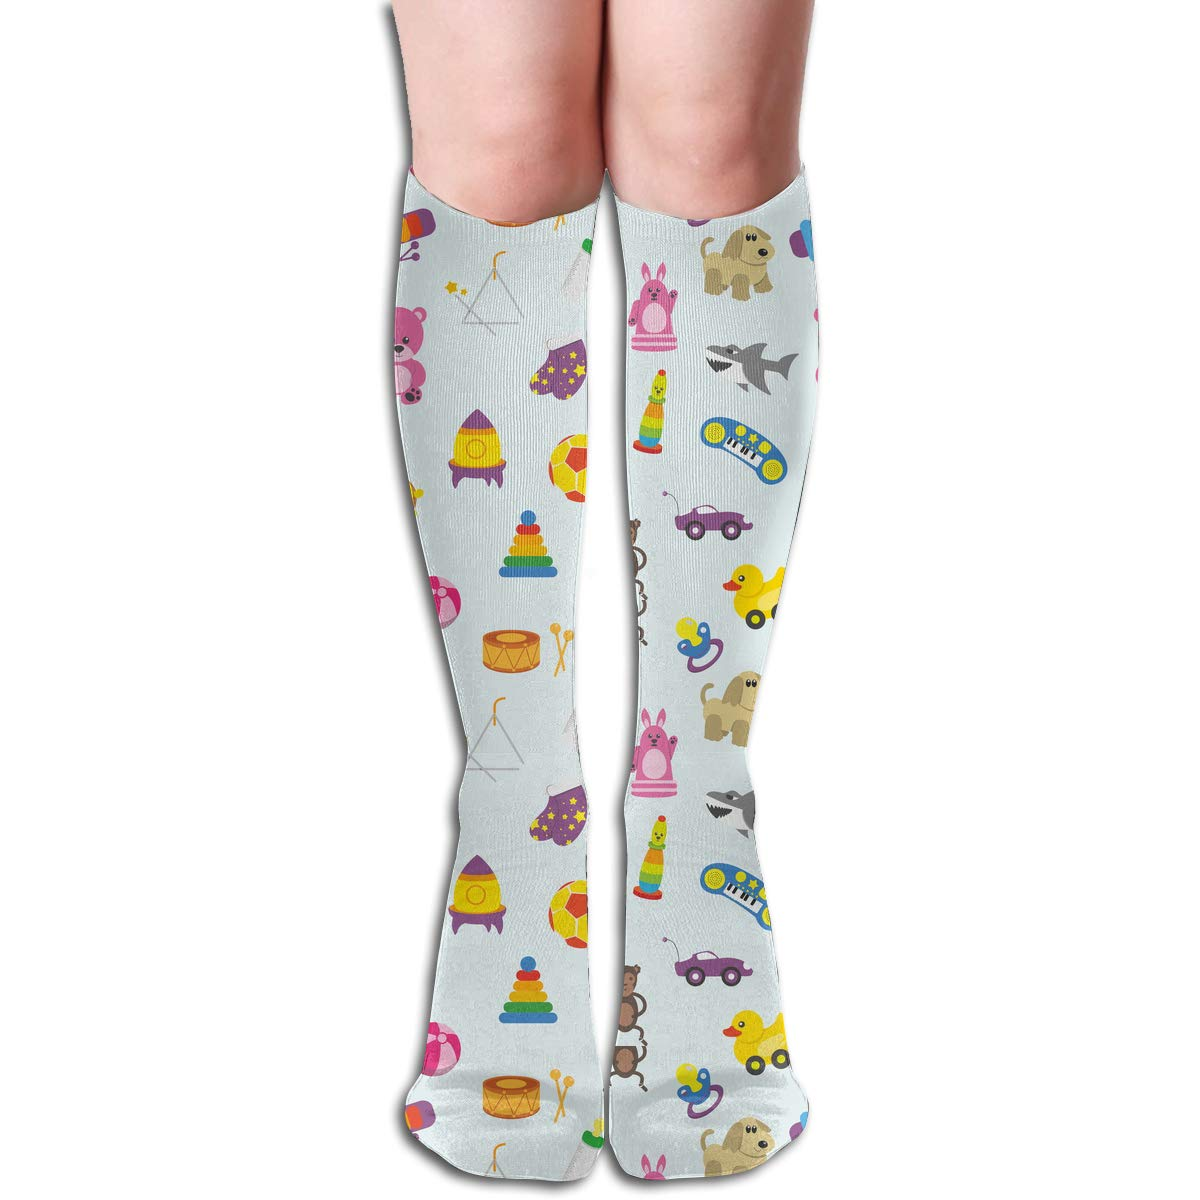 Womens Cotton High Sock Stylish Children And Kids Toys Pattern Long Stocking For Women